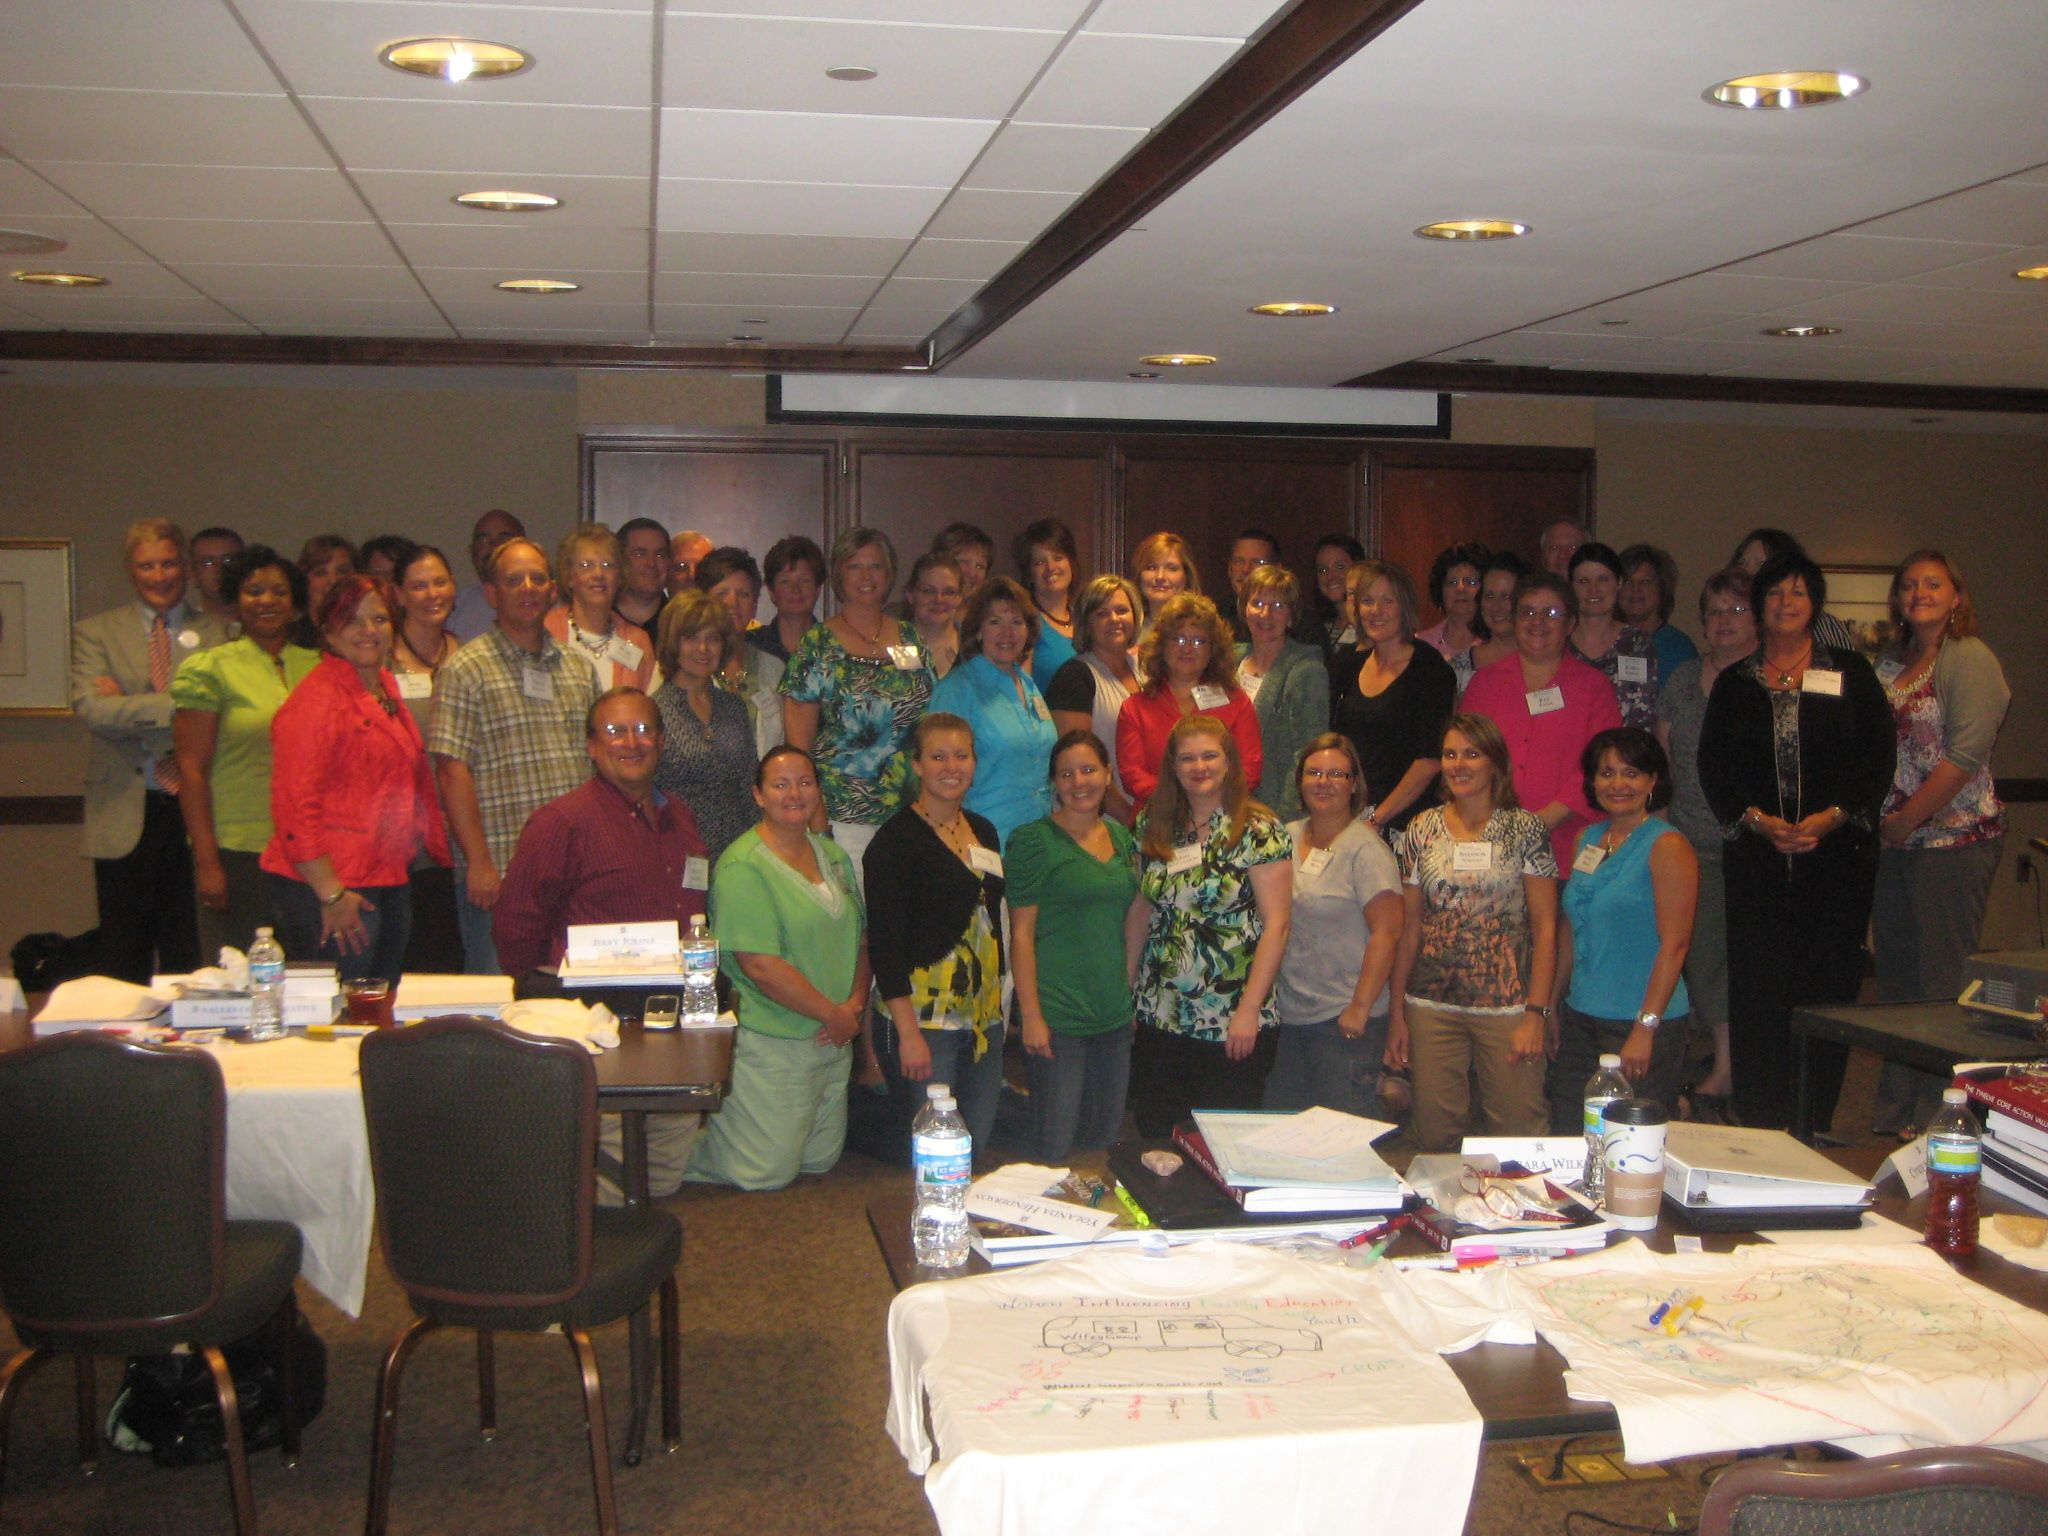 Certified Values Coach Trainer group from the course in